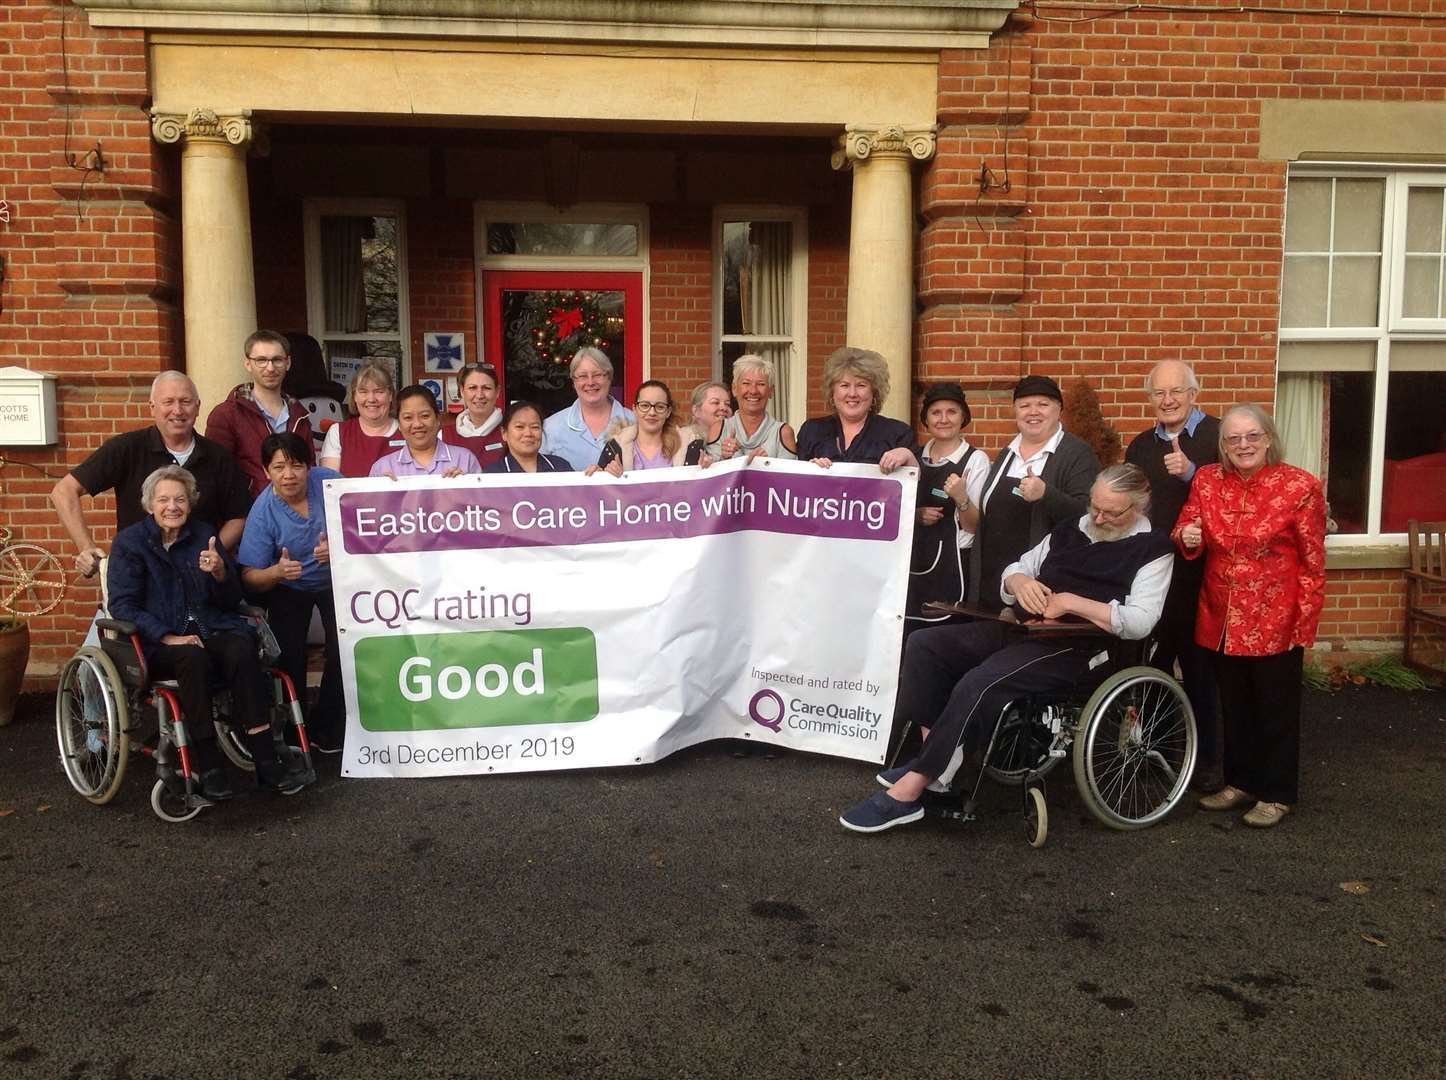 Staff and residents at Eastcotts Care Home with Nursing celebrate its improved CQC inspection. Contributed picture